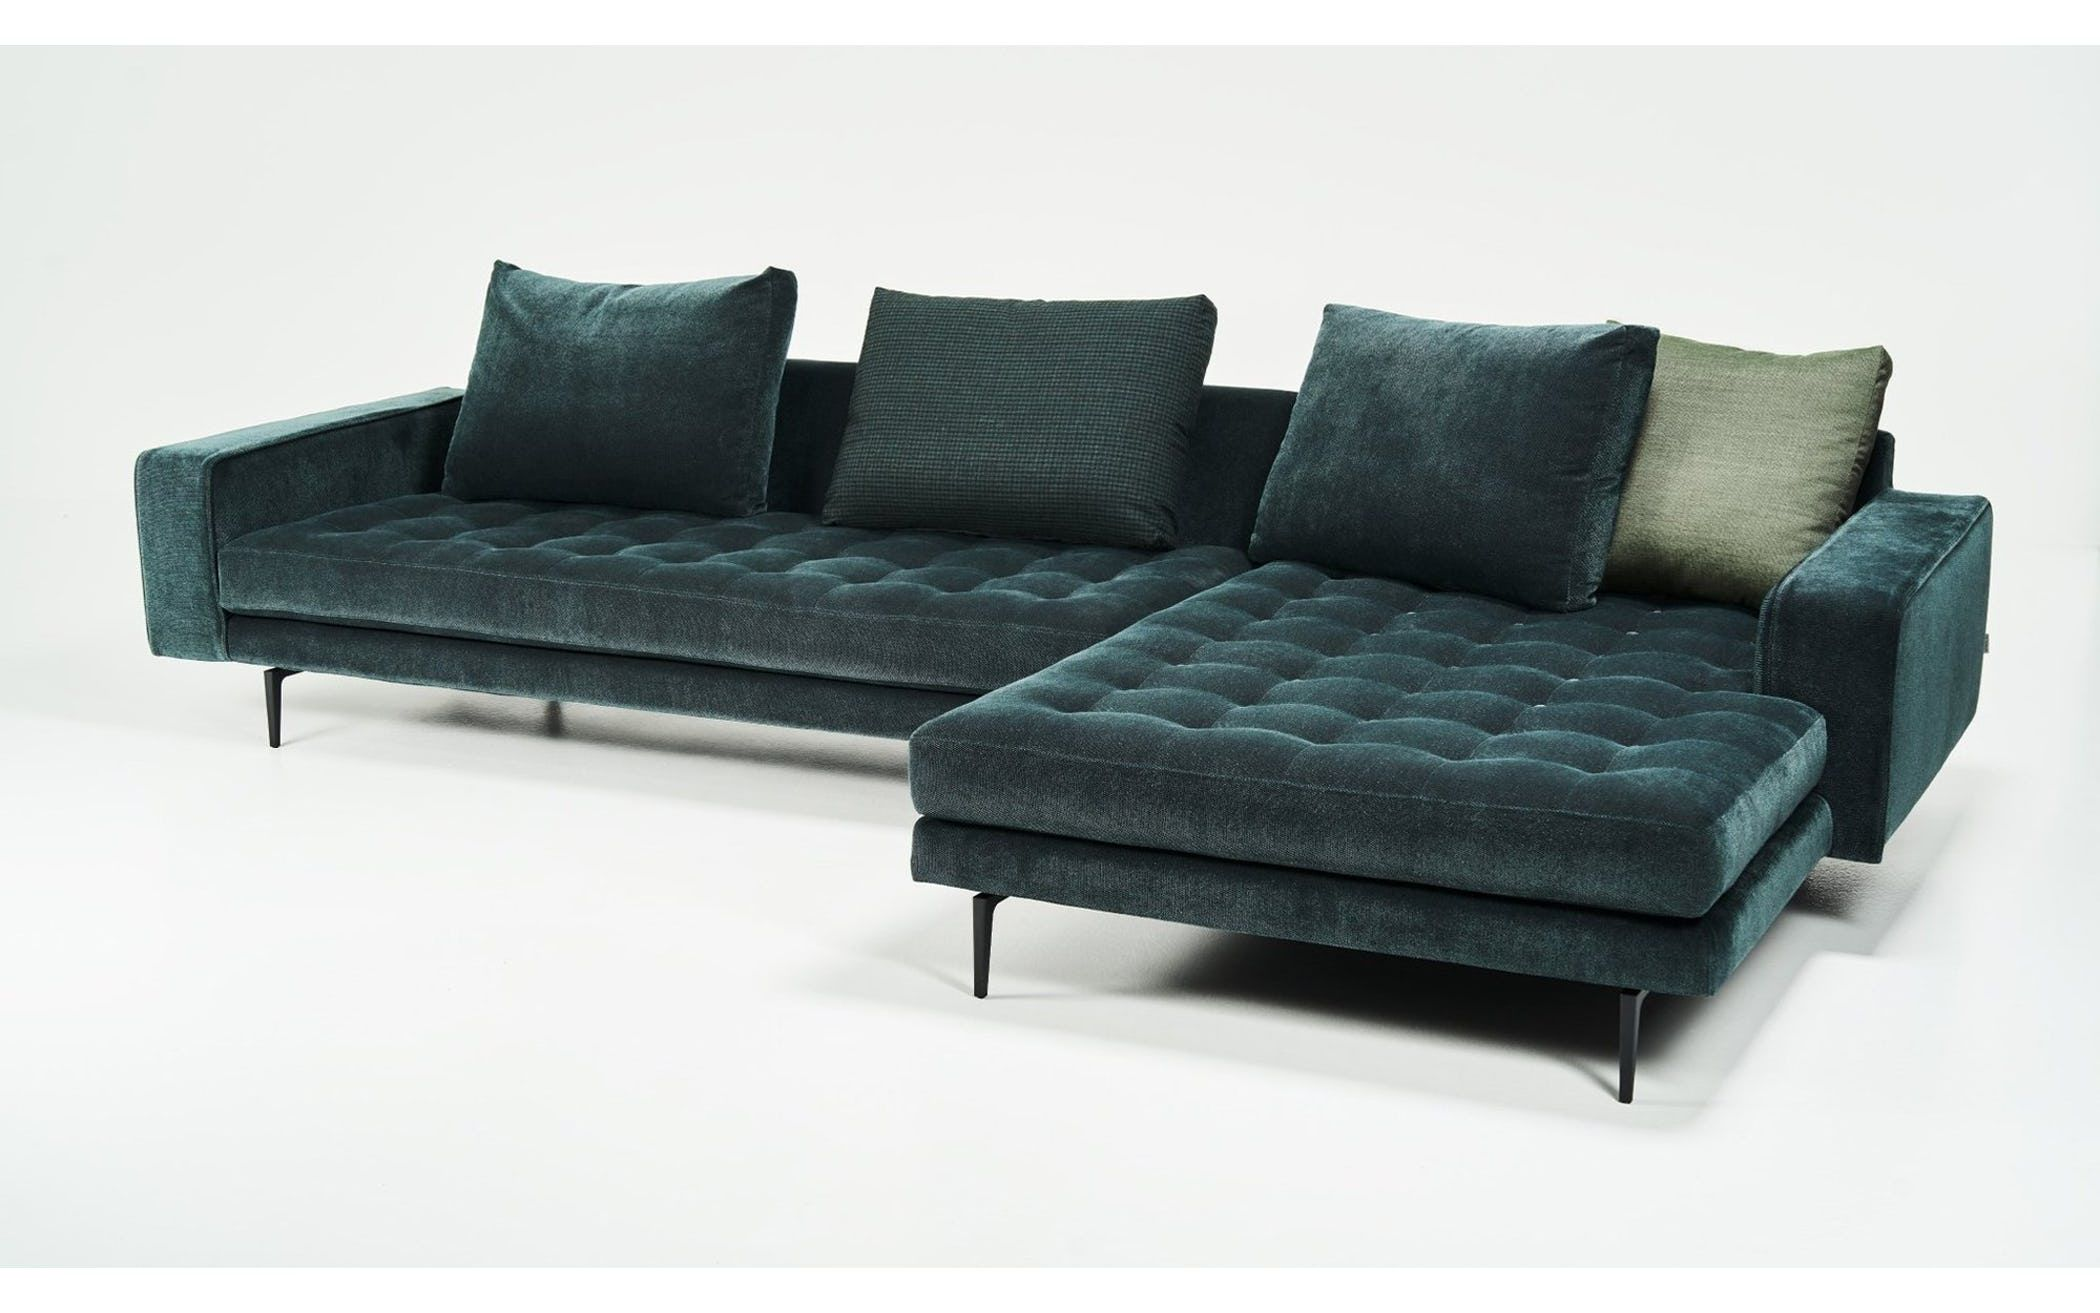 Campo Sofa By Wendelbo Furniture Contemporary Furniture Design Furniture Design